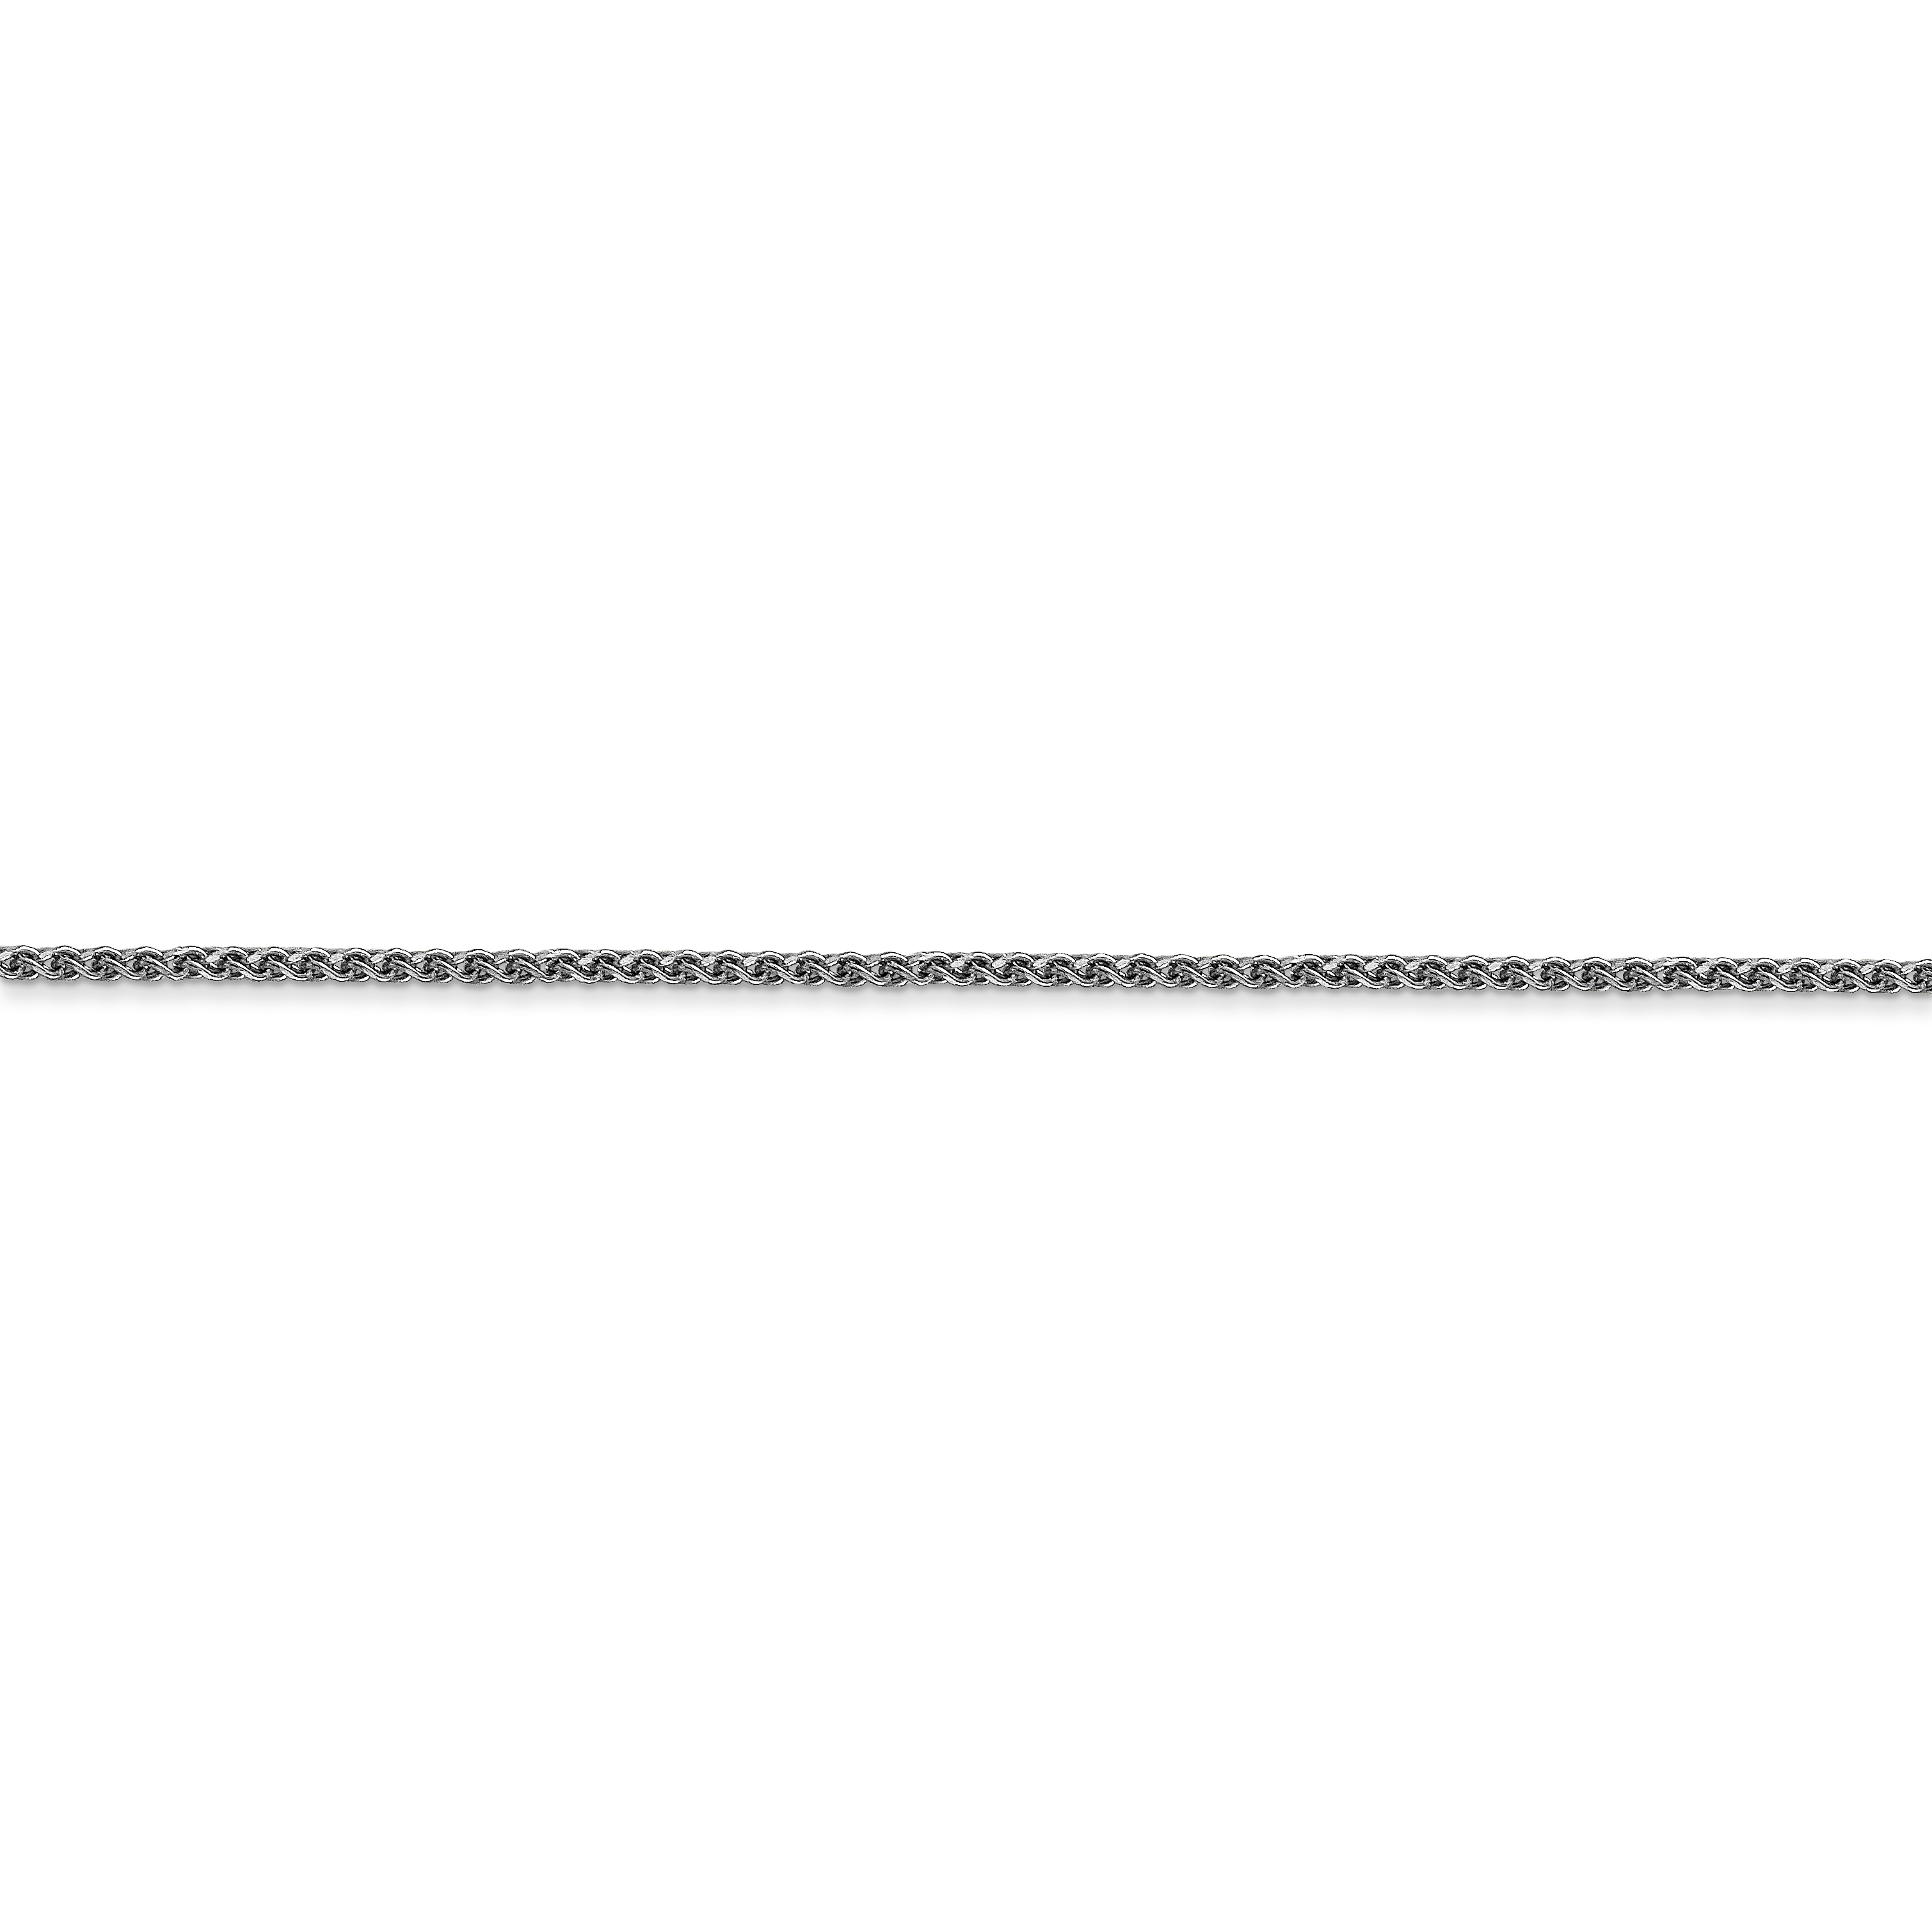 14k White Gold 1.2mm Solid Spiga Chain Necklace 16 Inch Pendant Charm Wheat Fine Jewelry Gifts For Women For Her - image 4 of 5